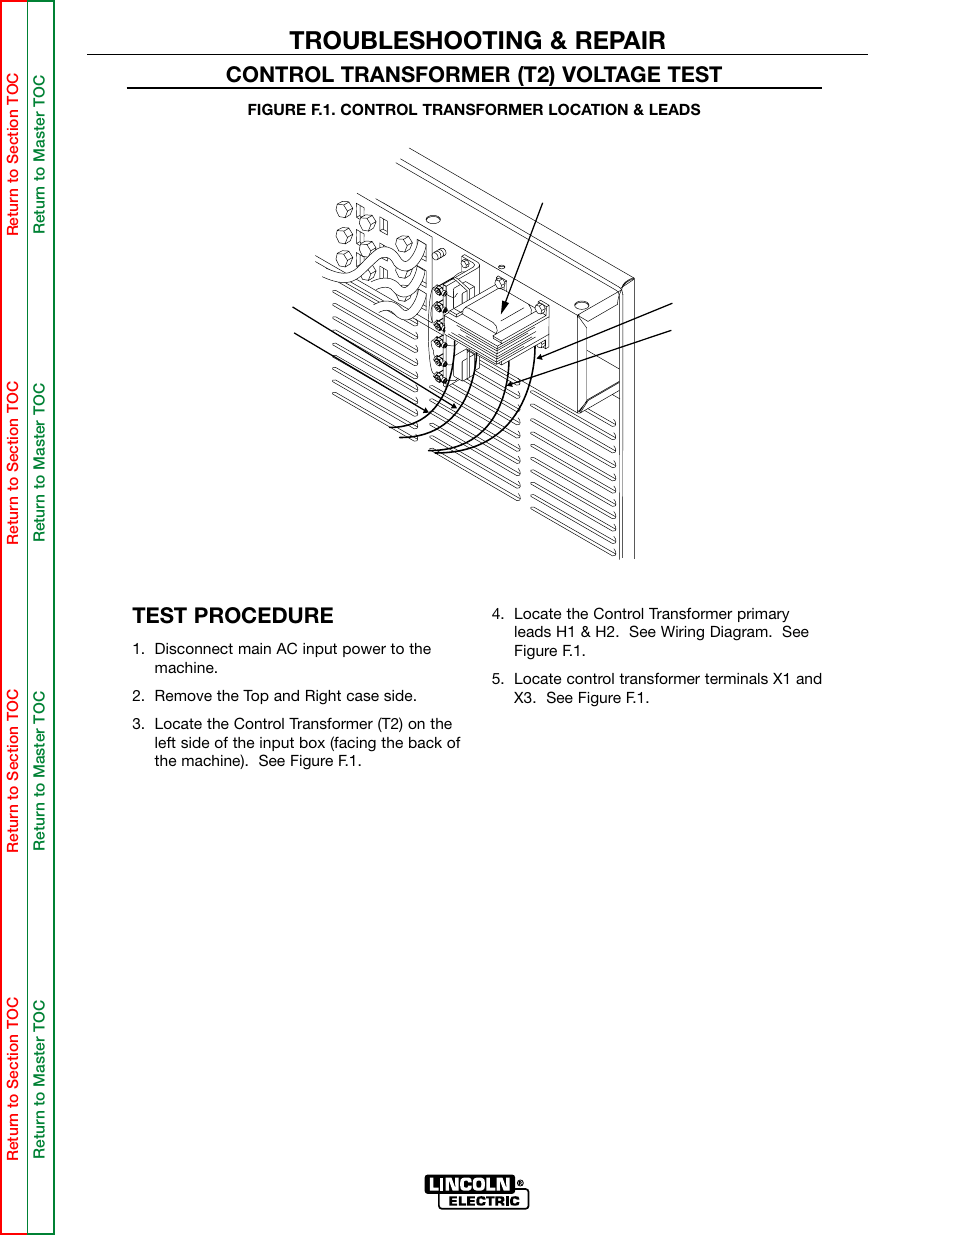 hight resolution of troubleshooting repair test procedure control transformer t2 voltage test lincoln electric multi source svm155 a user manual page 38 96